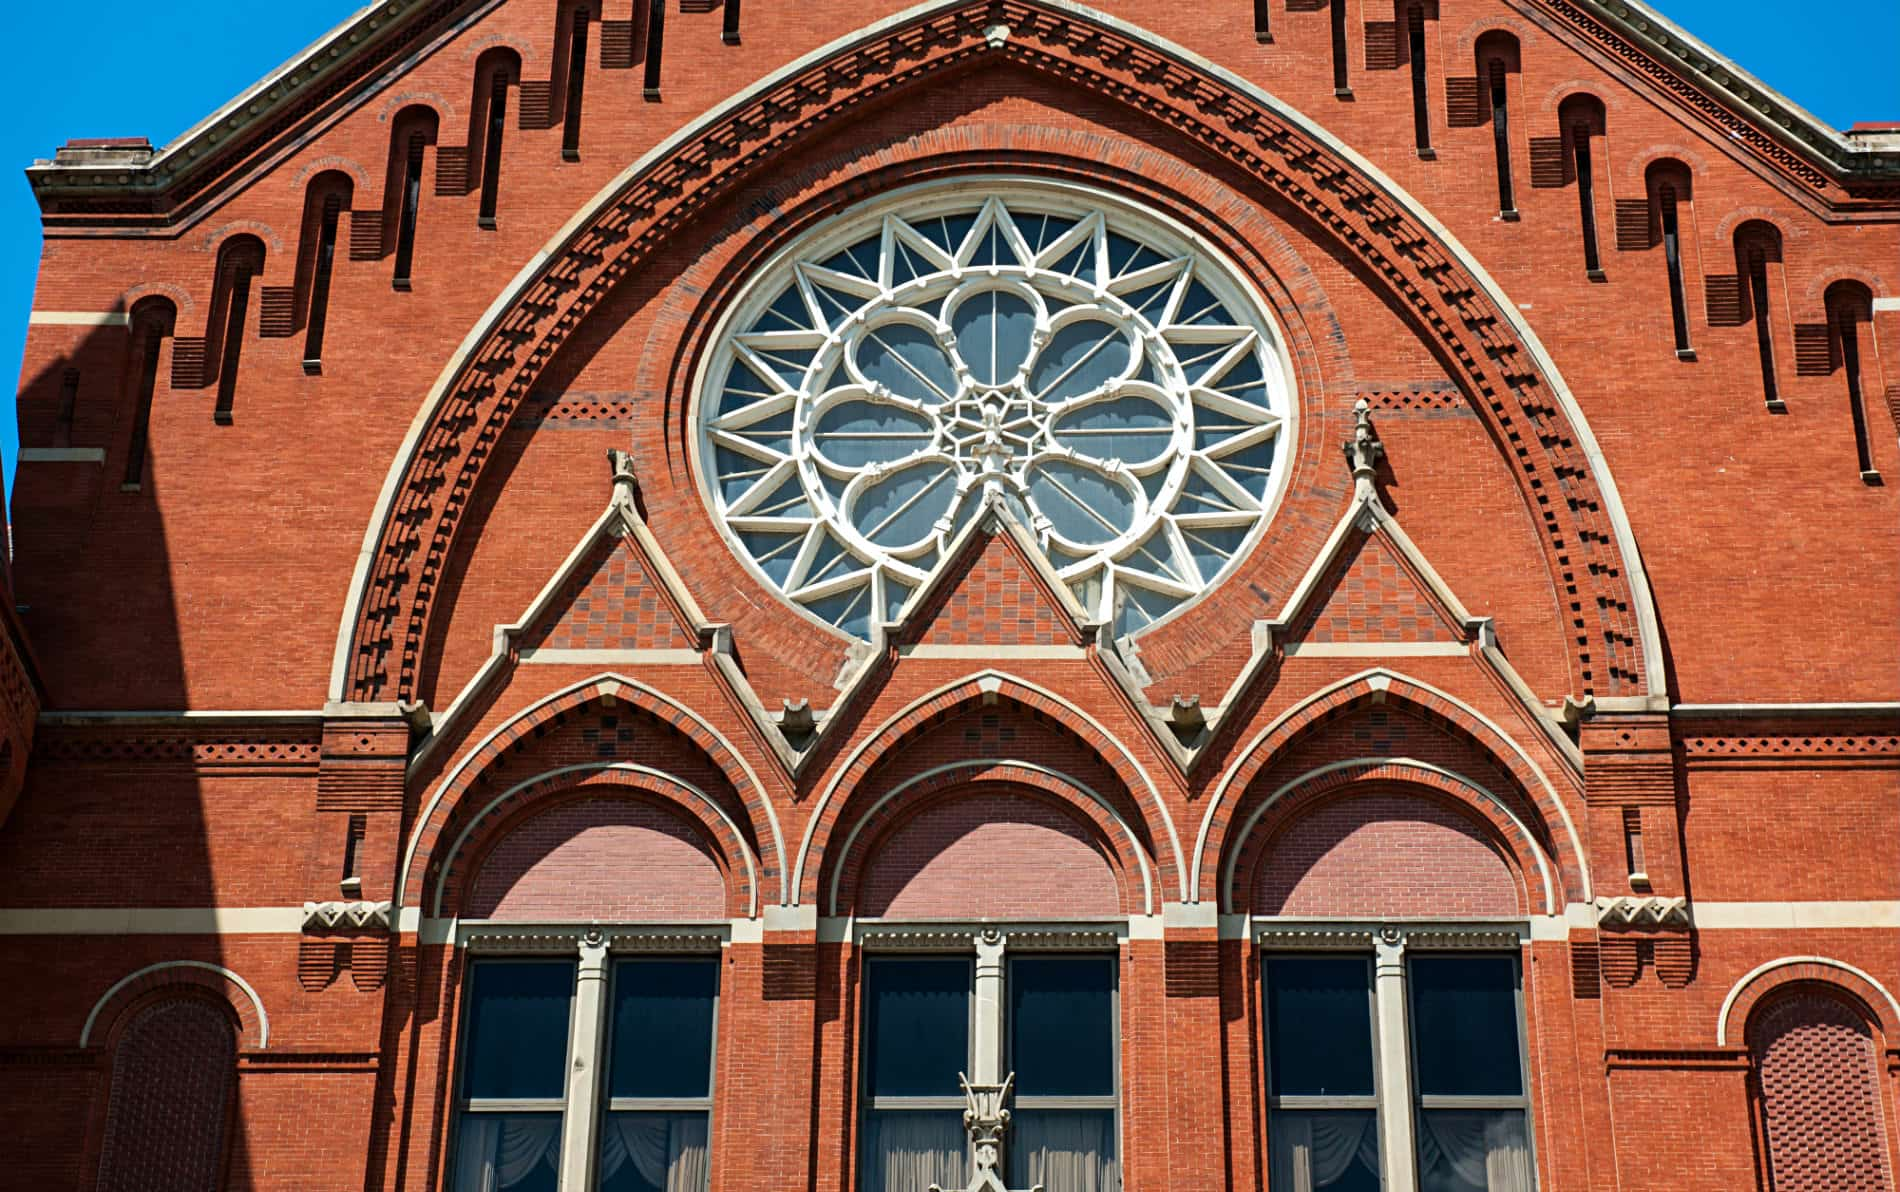 Historic red brick building with three arched windows